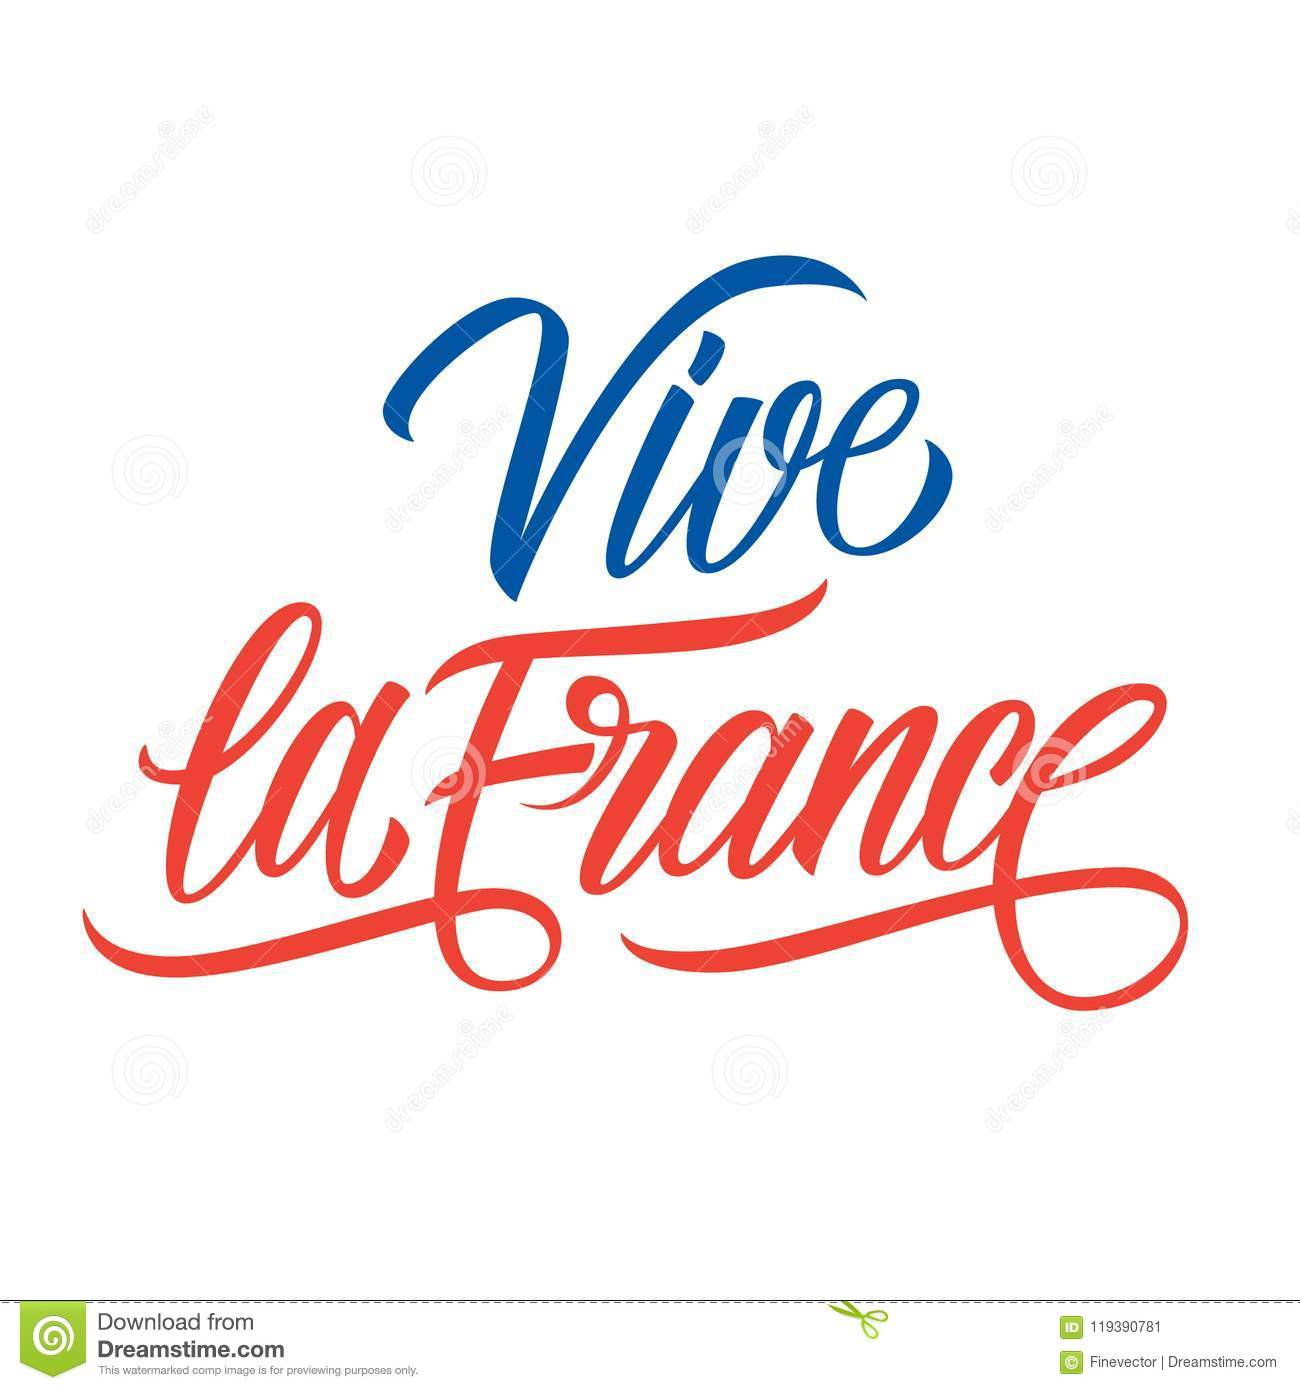 Vive la france hand lettering for holiday greetings and invitations download vive la france hand lettering for holiday greetings and invitations with french national day m4hsunfo